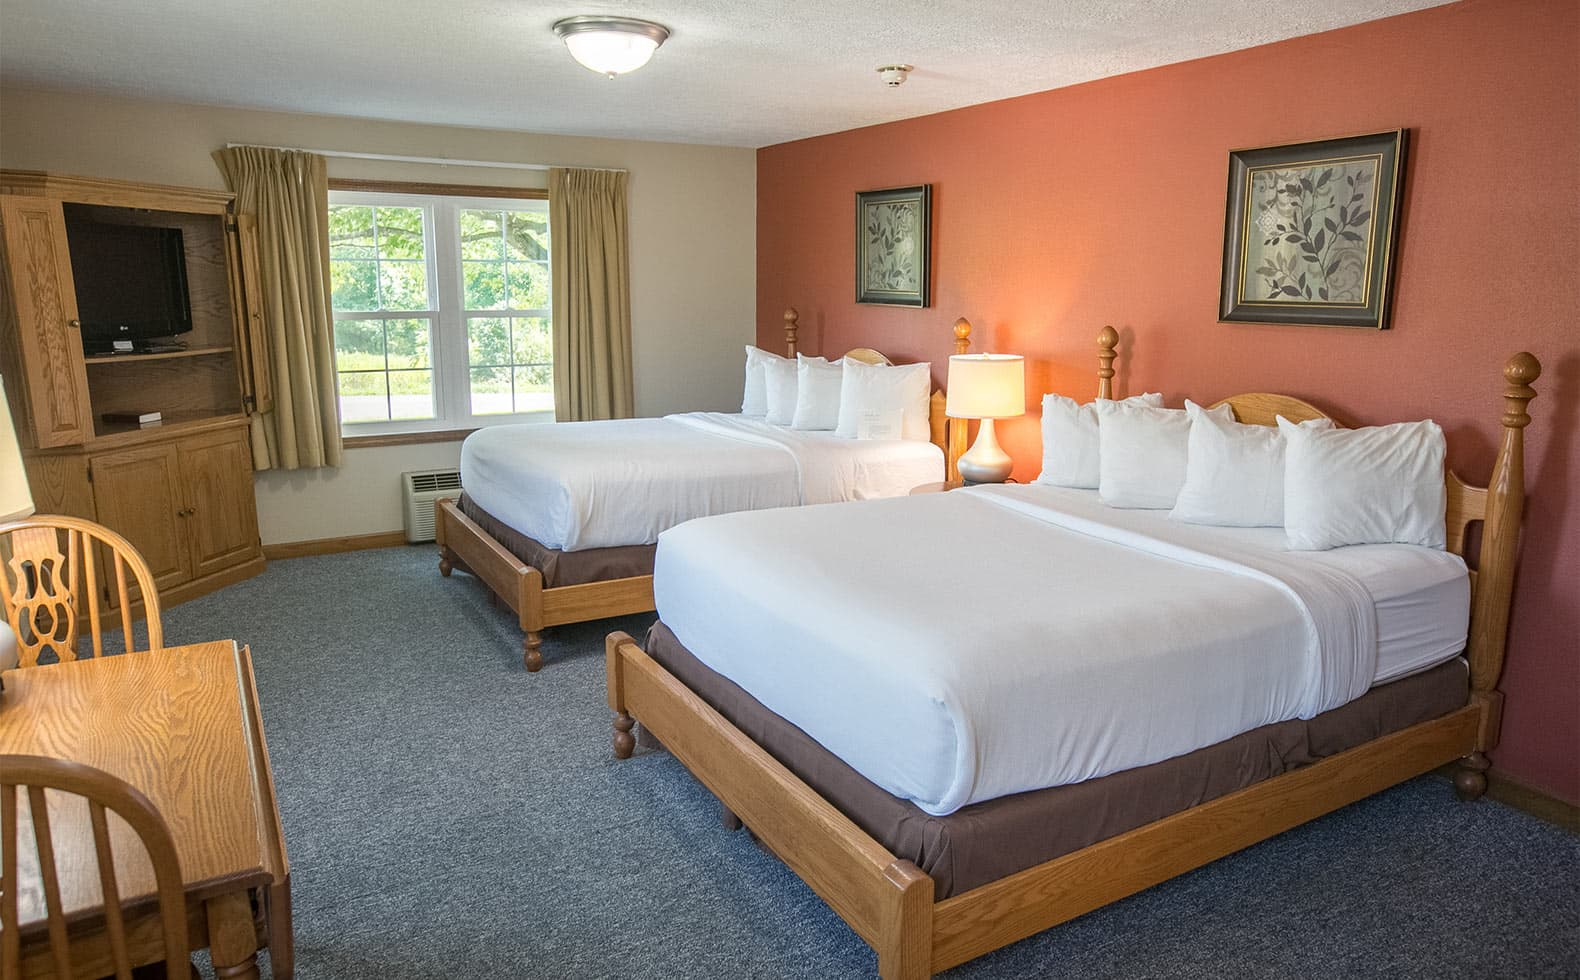 Two Queen Beds in Room 8 with Dining table and chairs.